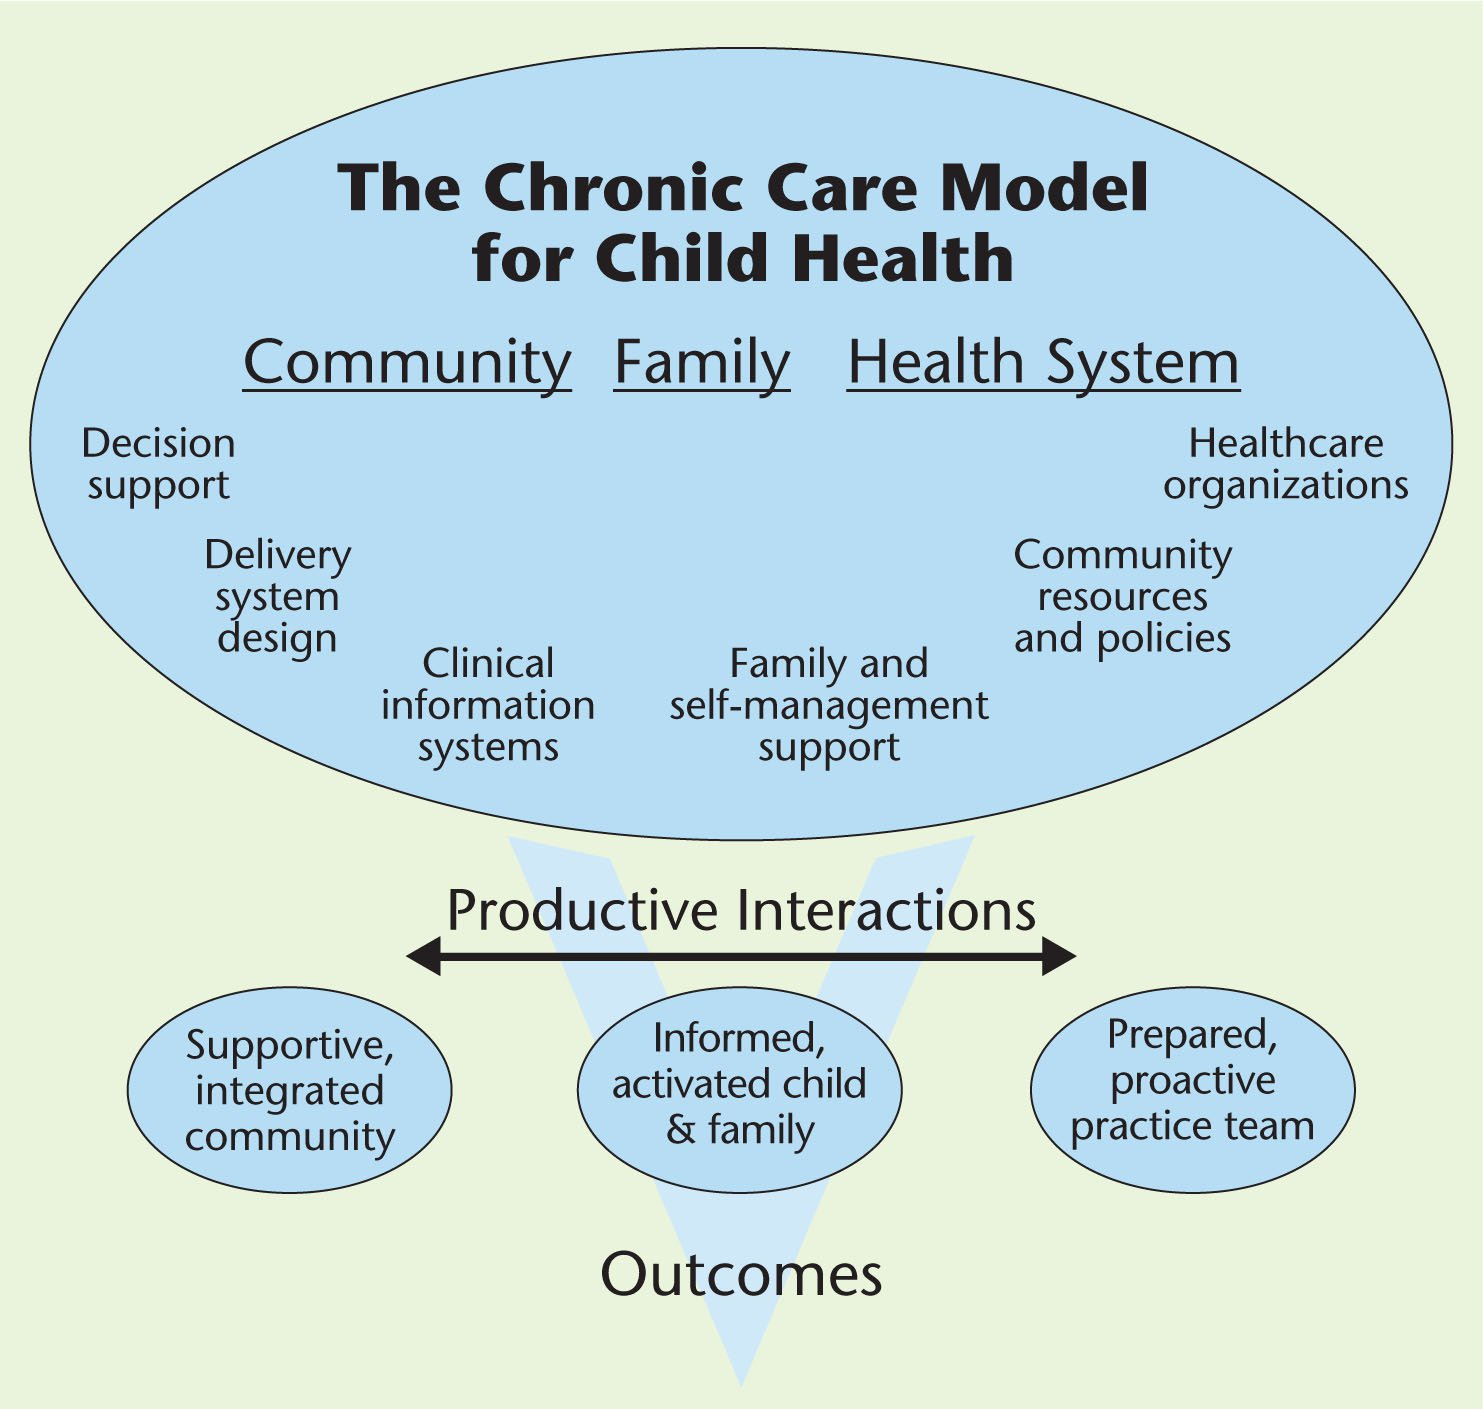 chronic care by e health Keywords: patient care team, medical informatics, telemedicine, interdisciplinary communication, quality of health care, chronic disease introduction chronic diseases are the most common cause of mortality and morbidity in developed countries [ 1 ].